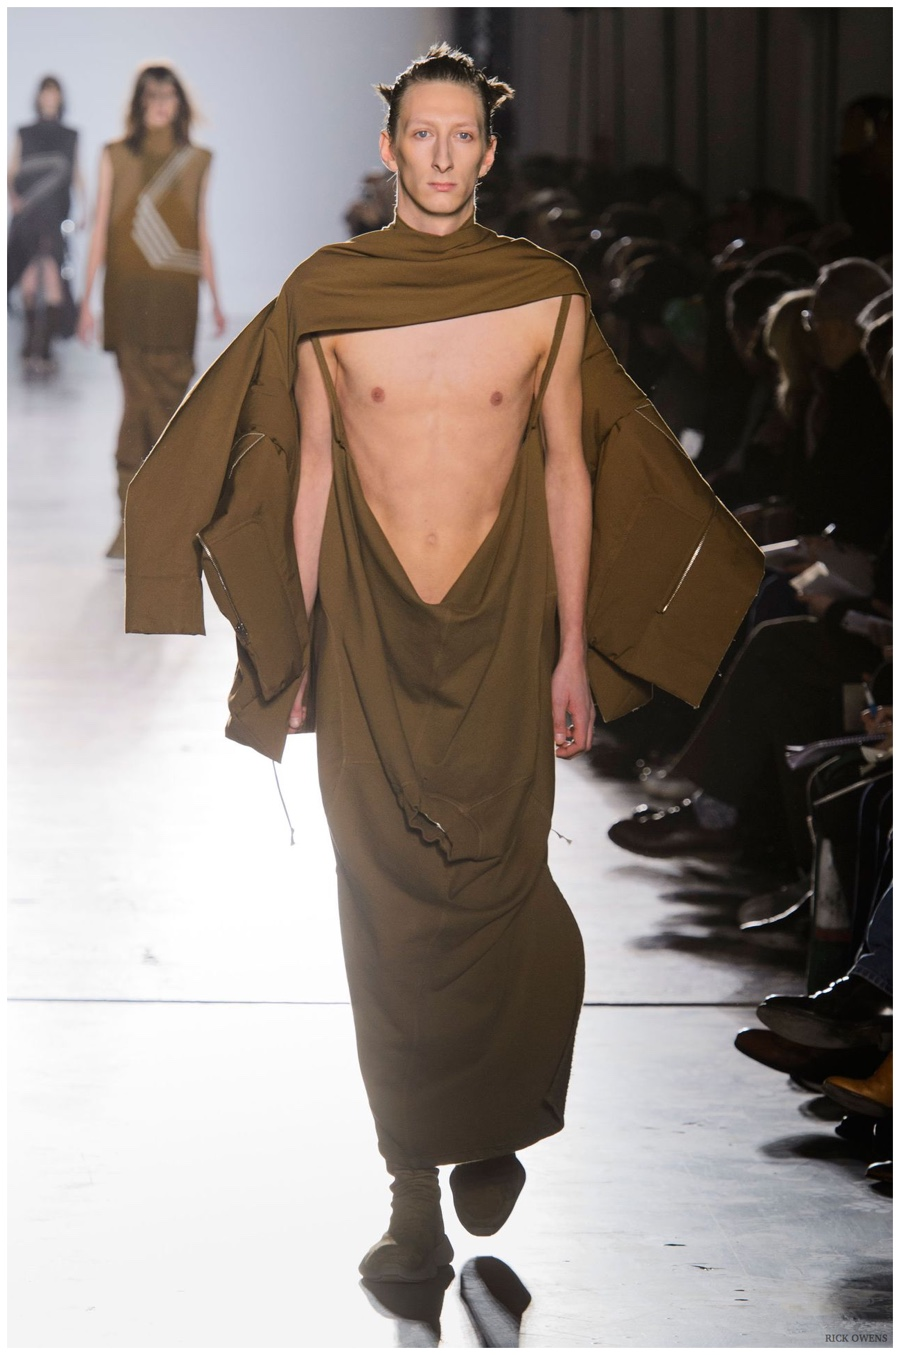 new concept 3922c dd4db Rick Owens Fall Winter 2015 Menswear Collection  High Fashion Exposure